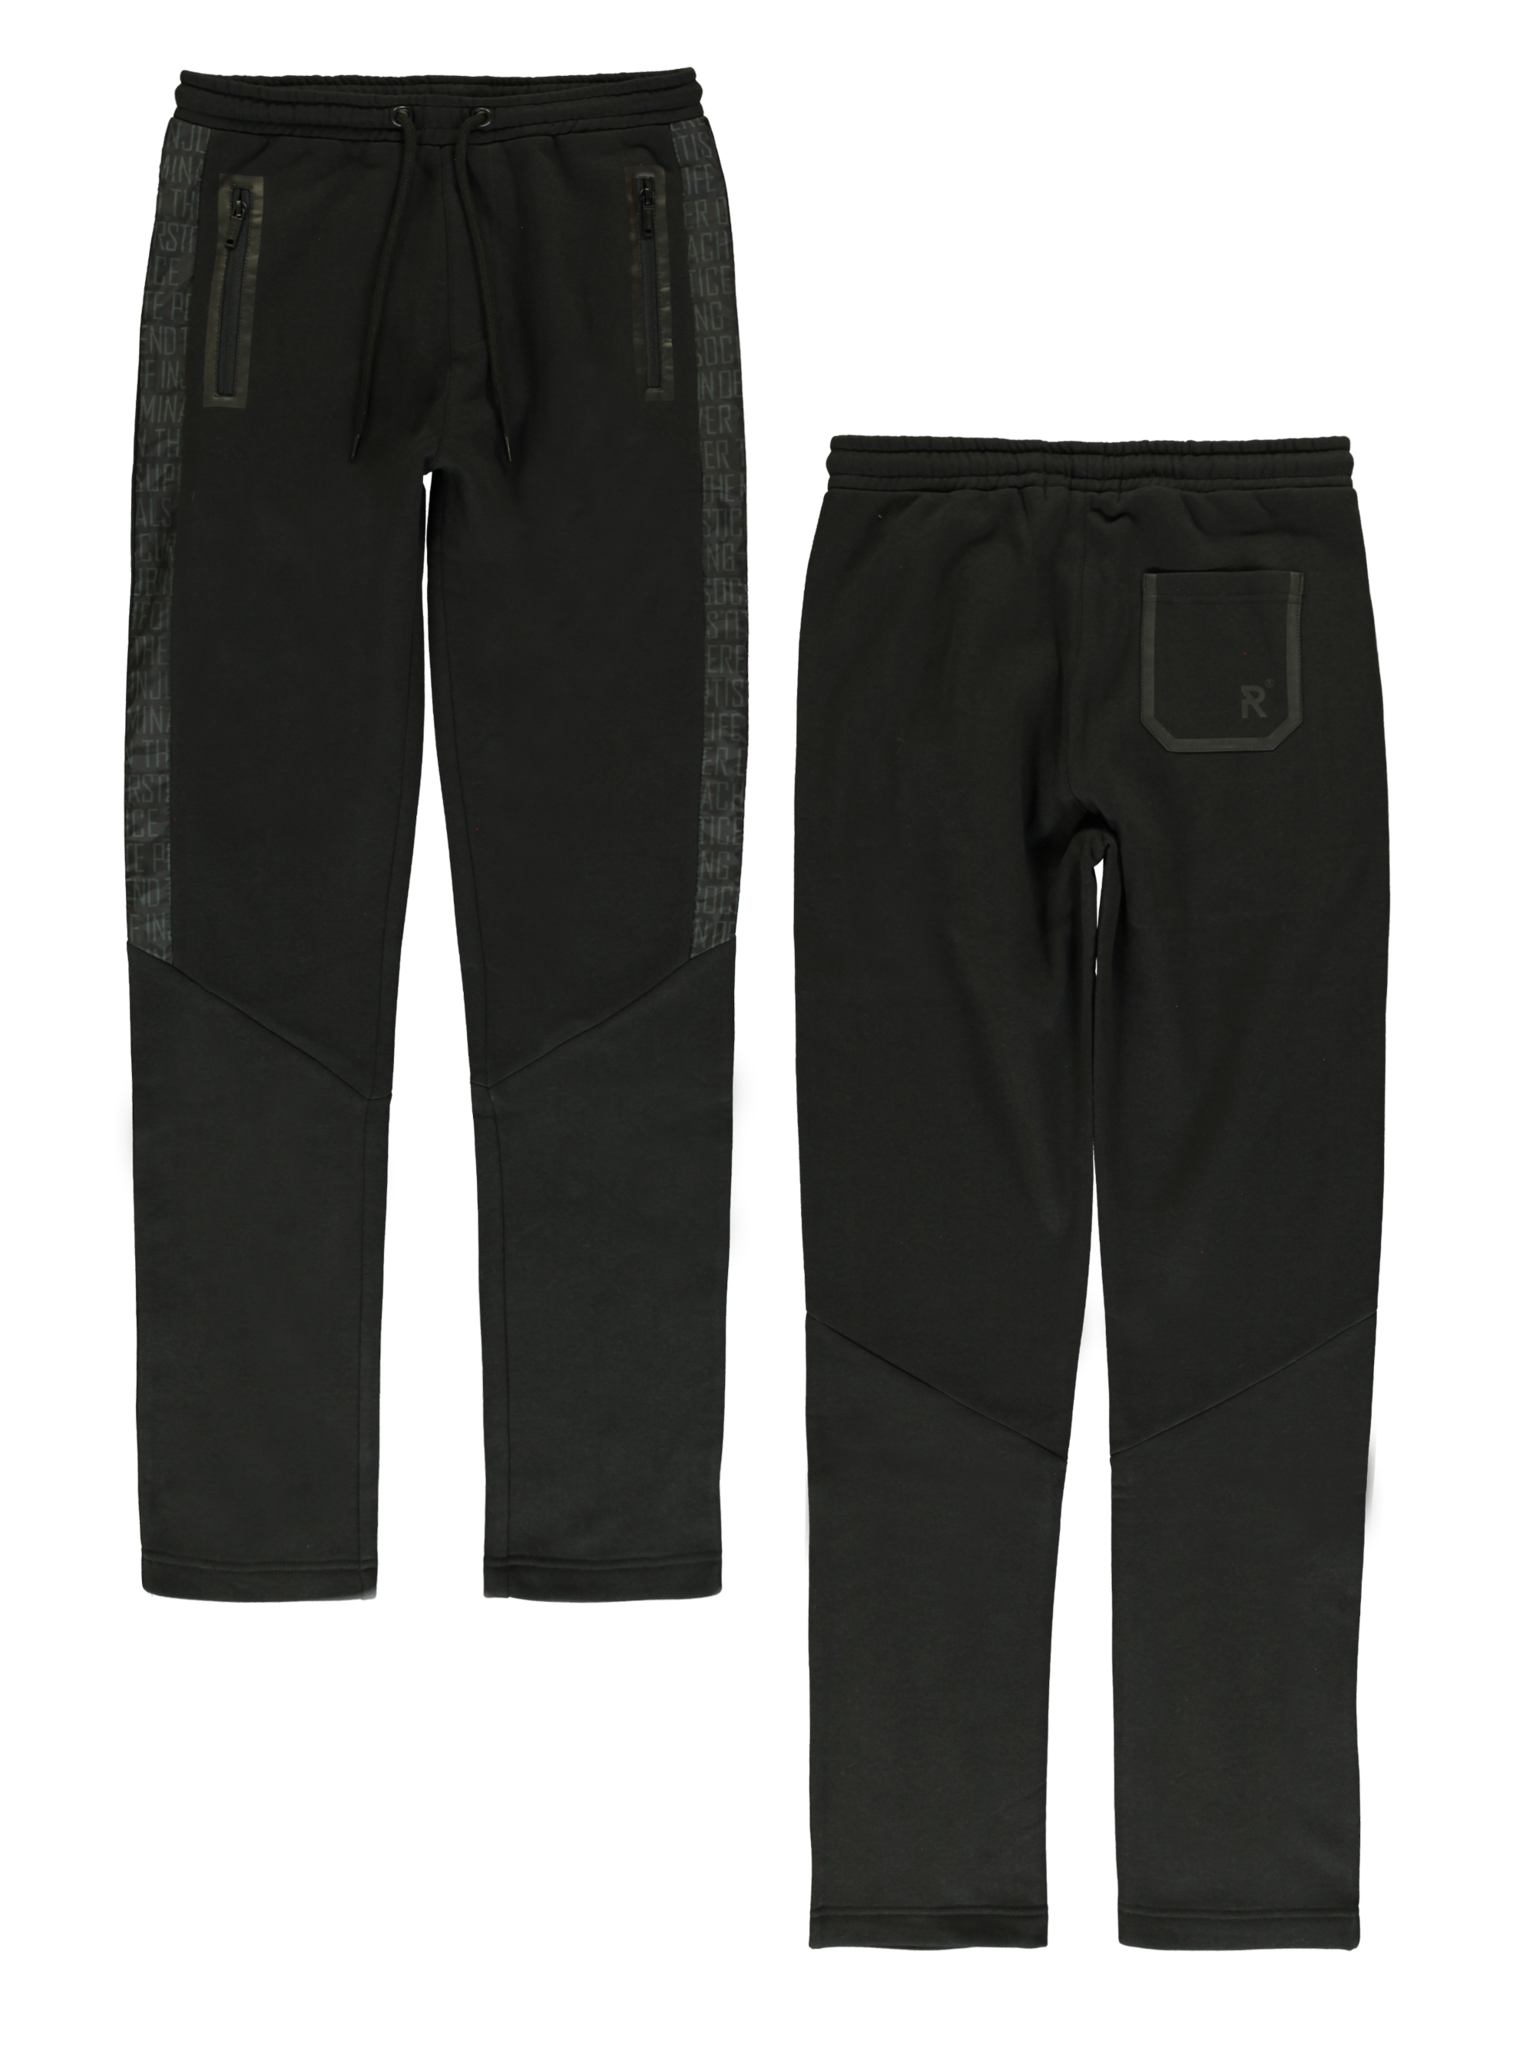 All Brands | Winterproducts Men | Jogging Pant | 20 pcs/box